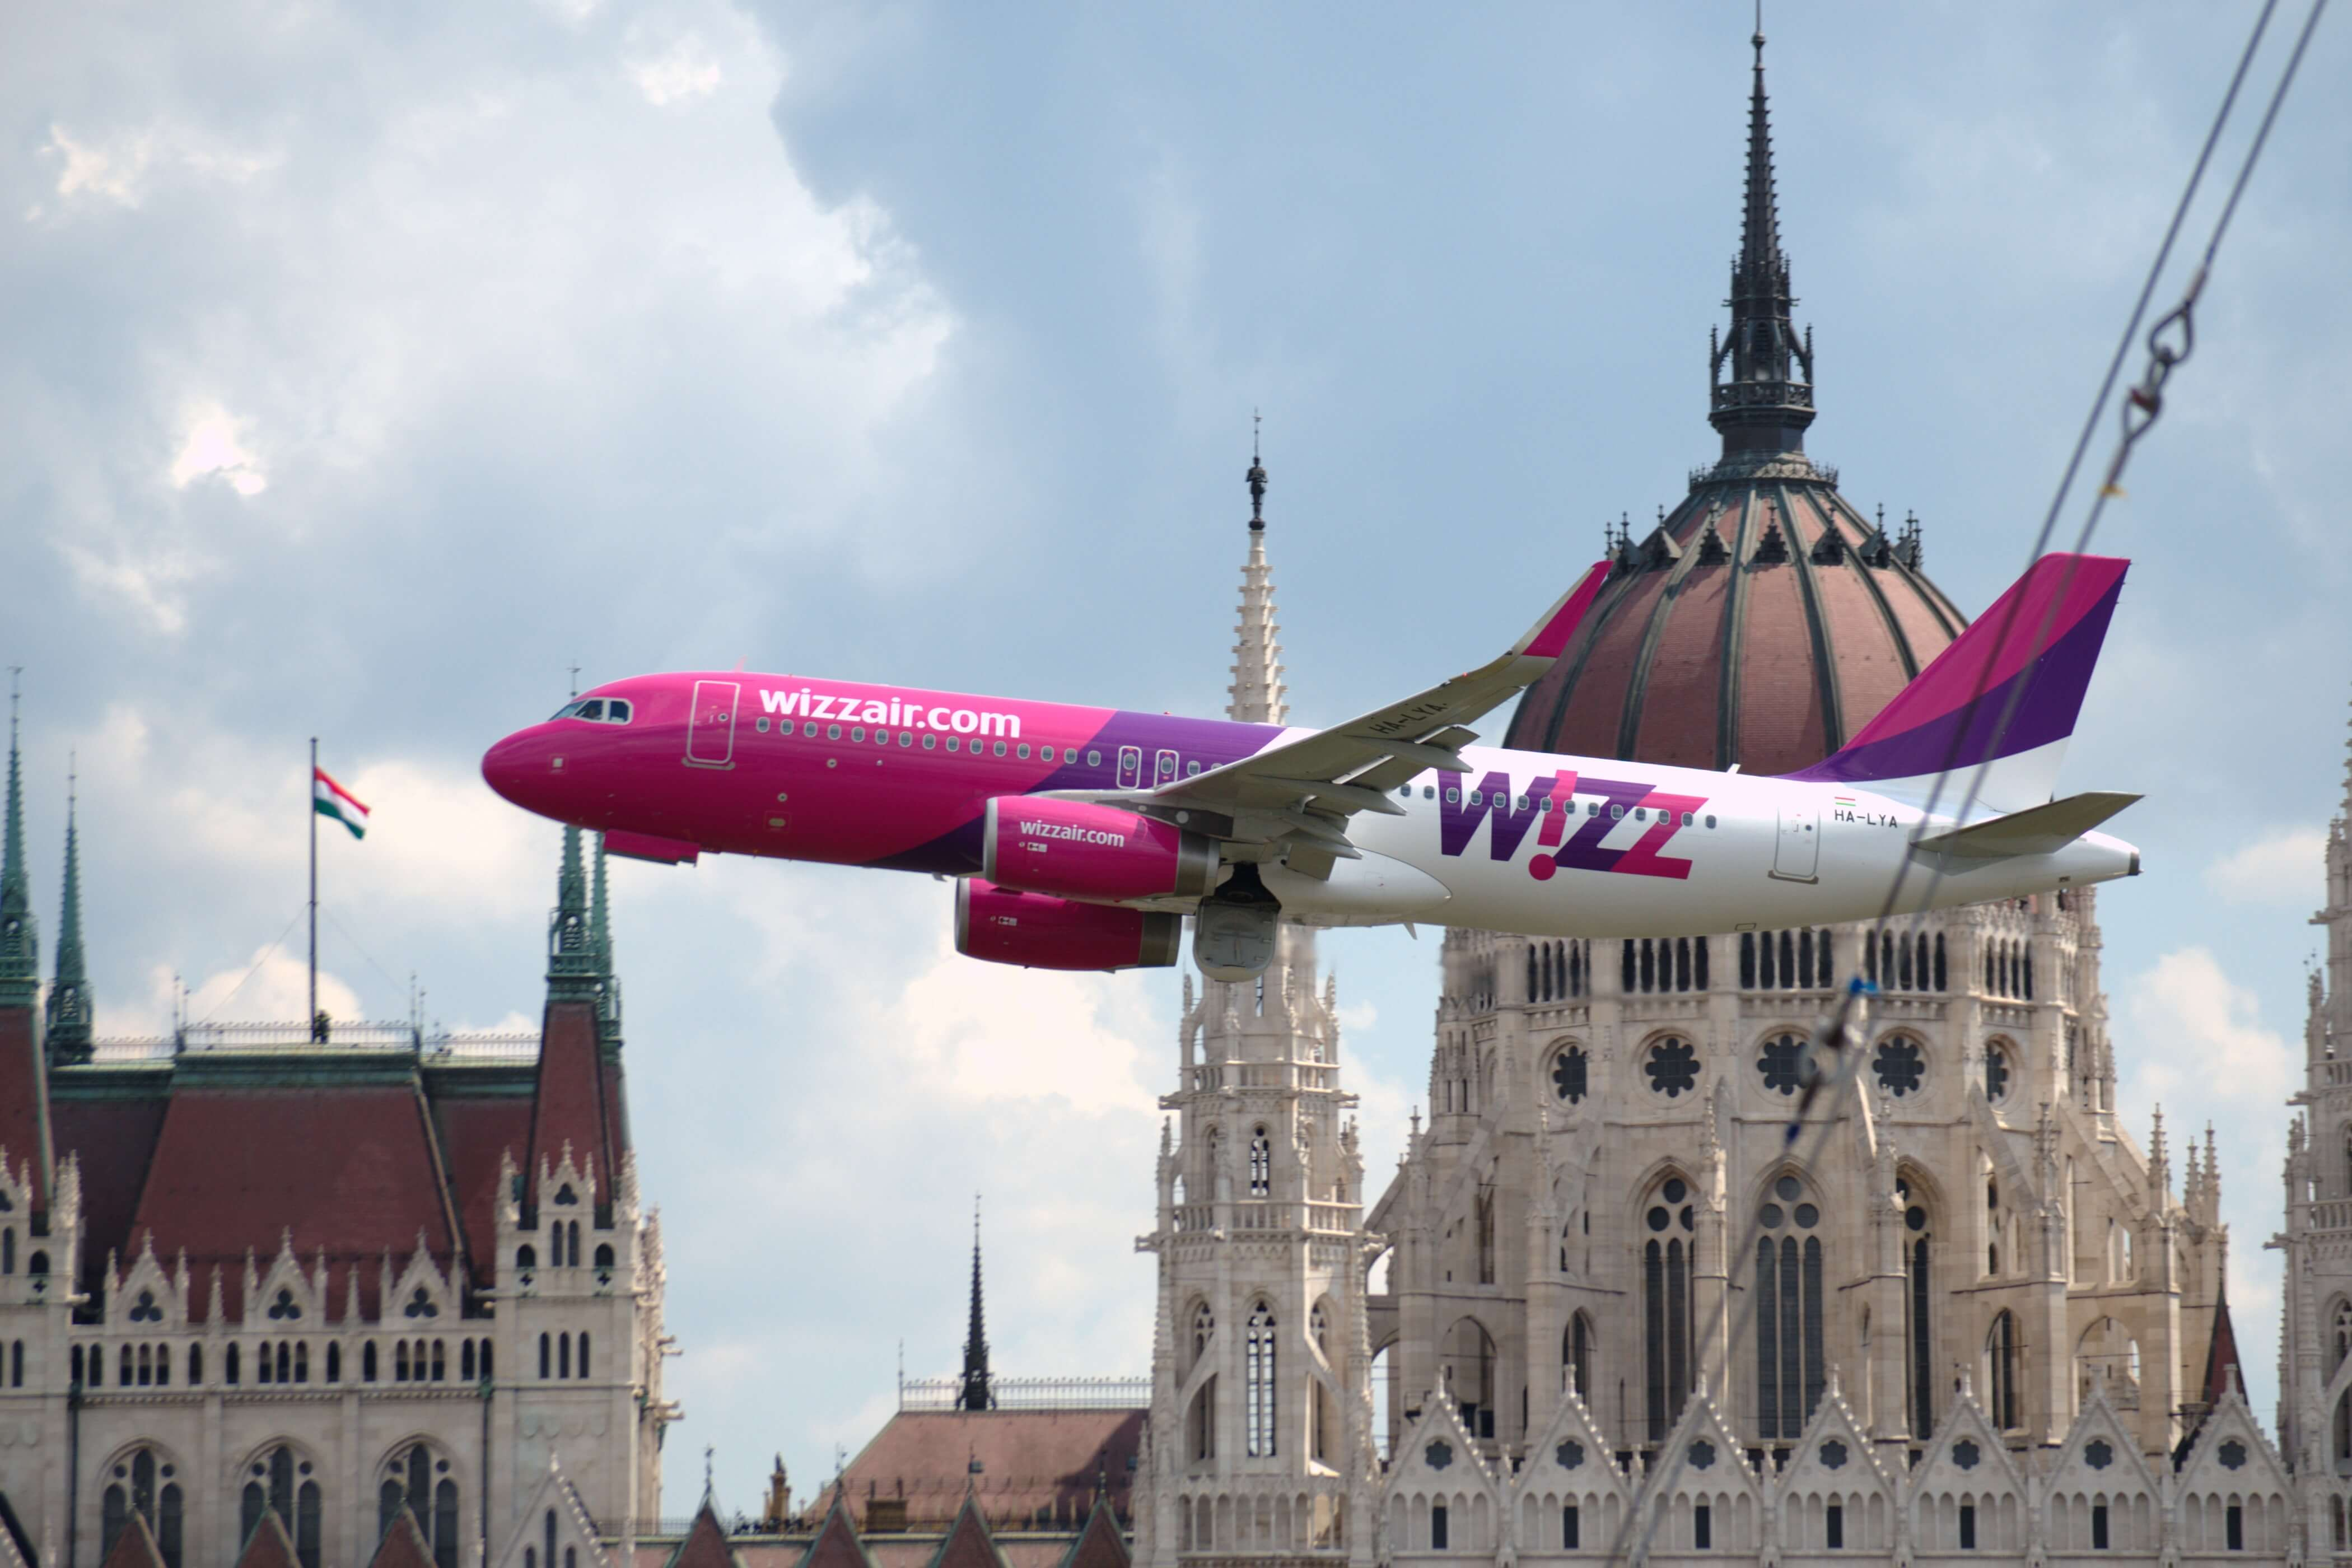 Budapest Airport gets winter boost with Wizz Air